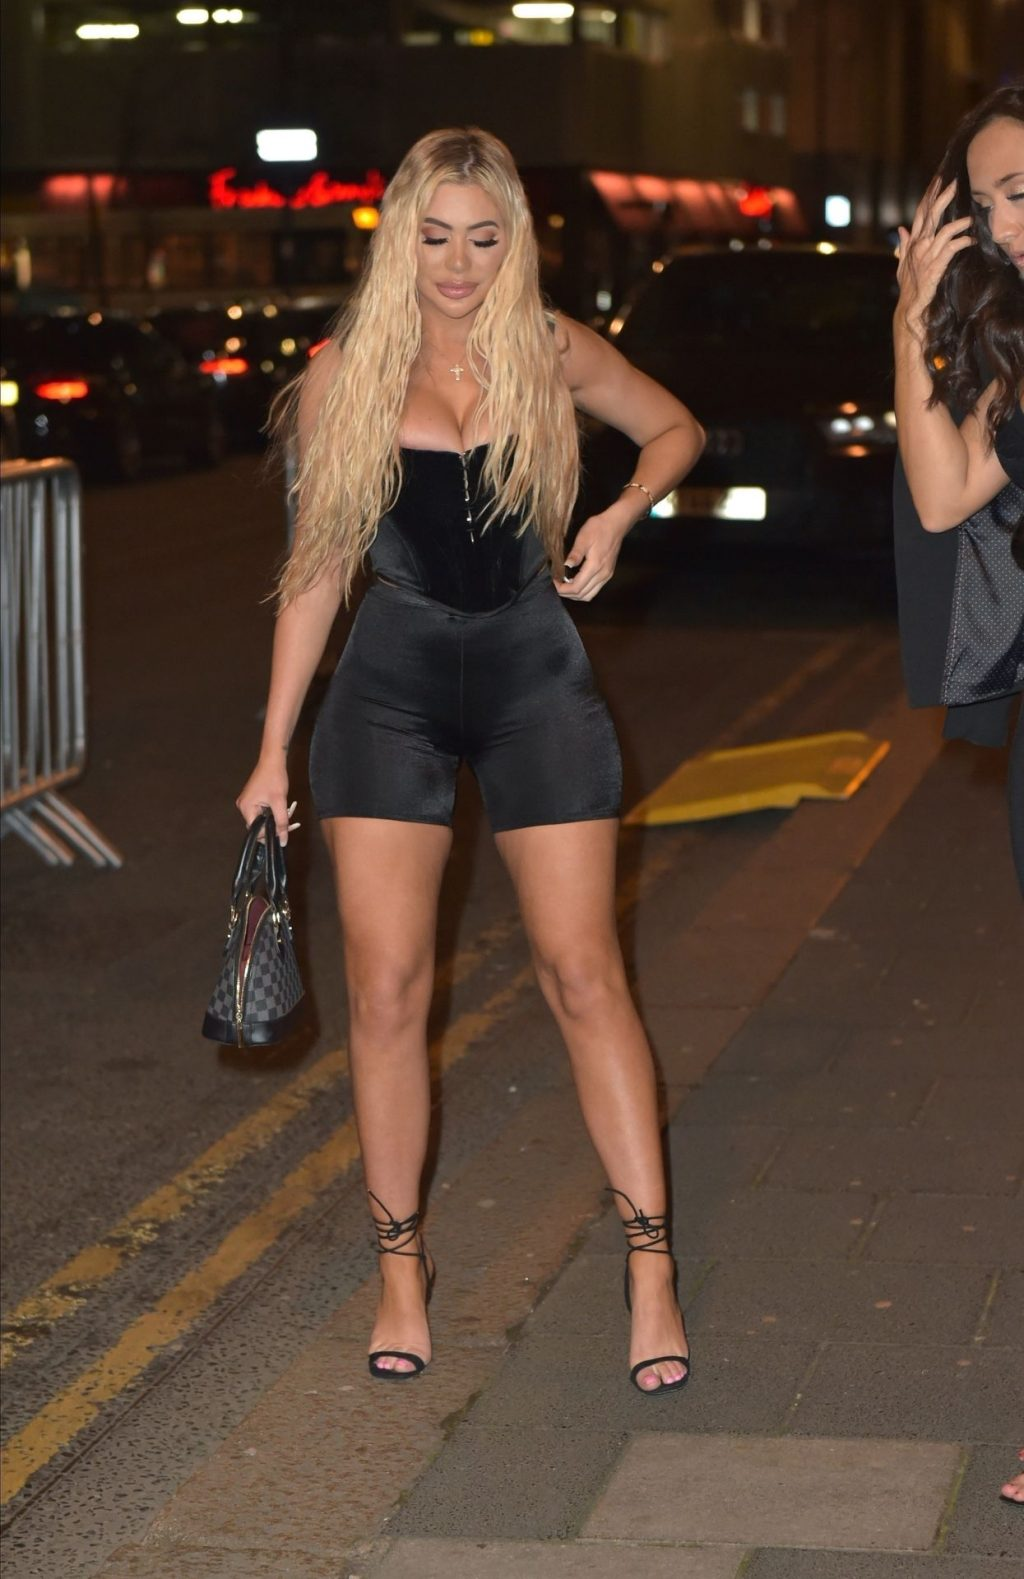 Chloe Ferry Hits the Town and Attends Floyd Mayweather Night (67 Photos)